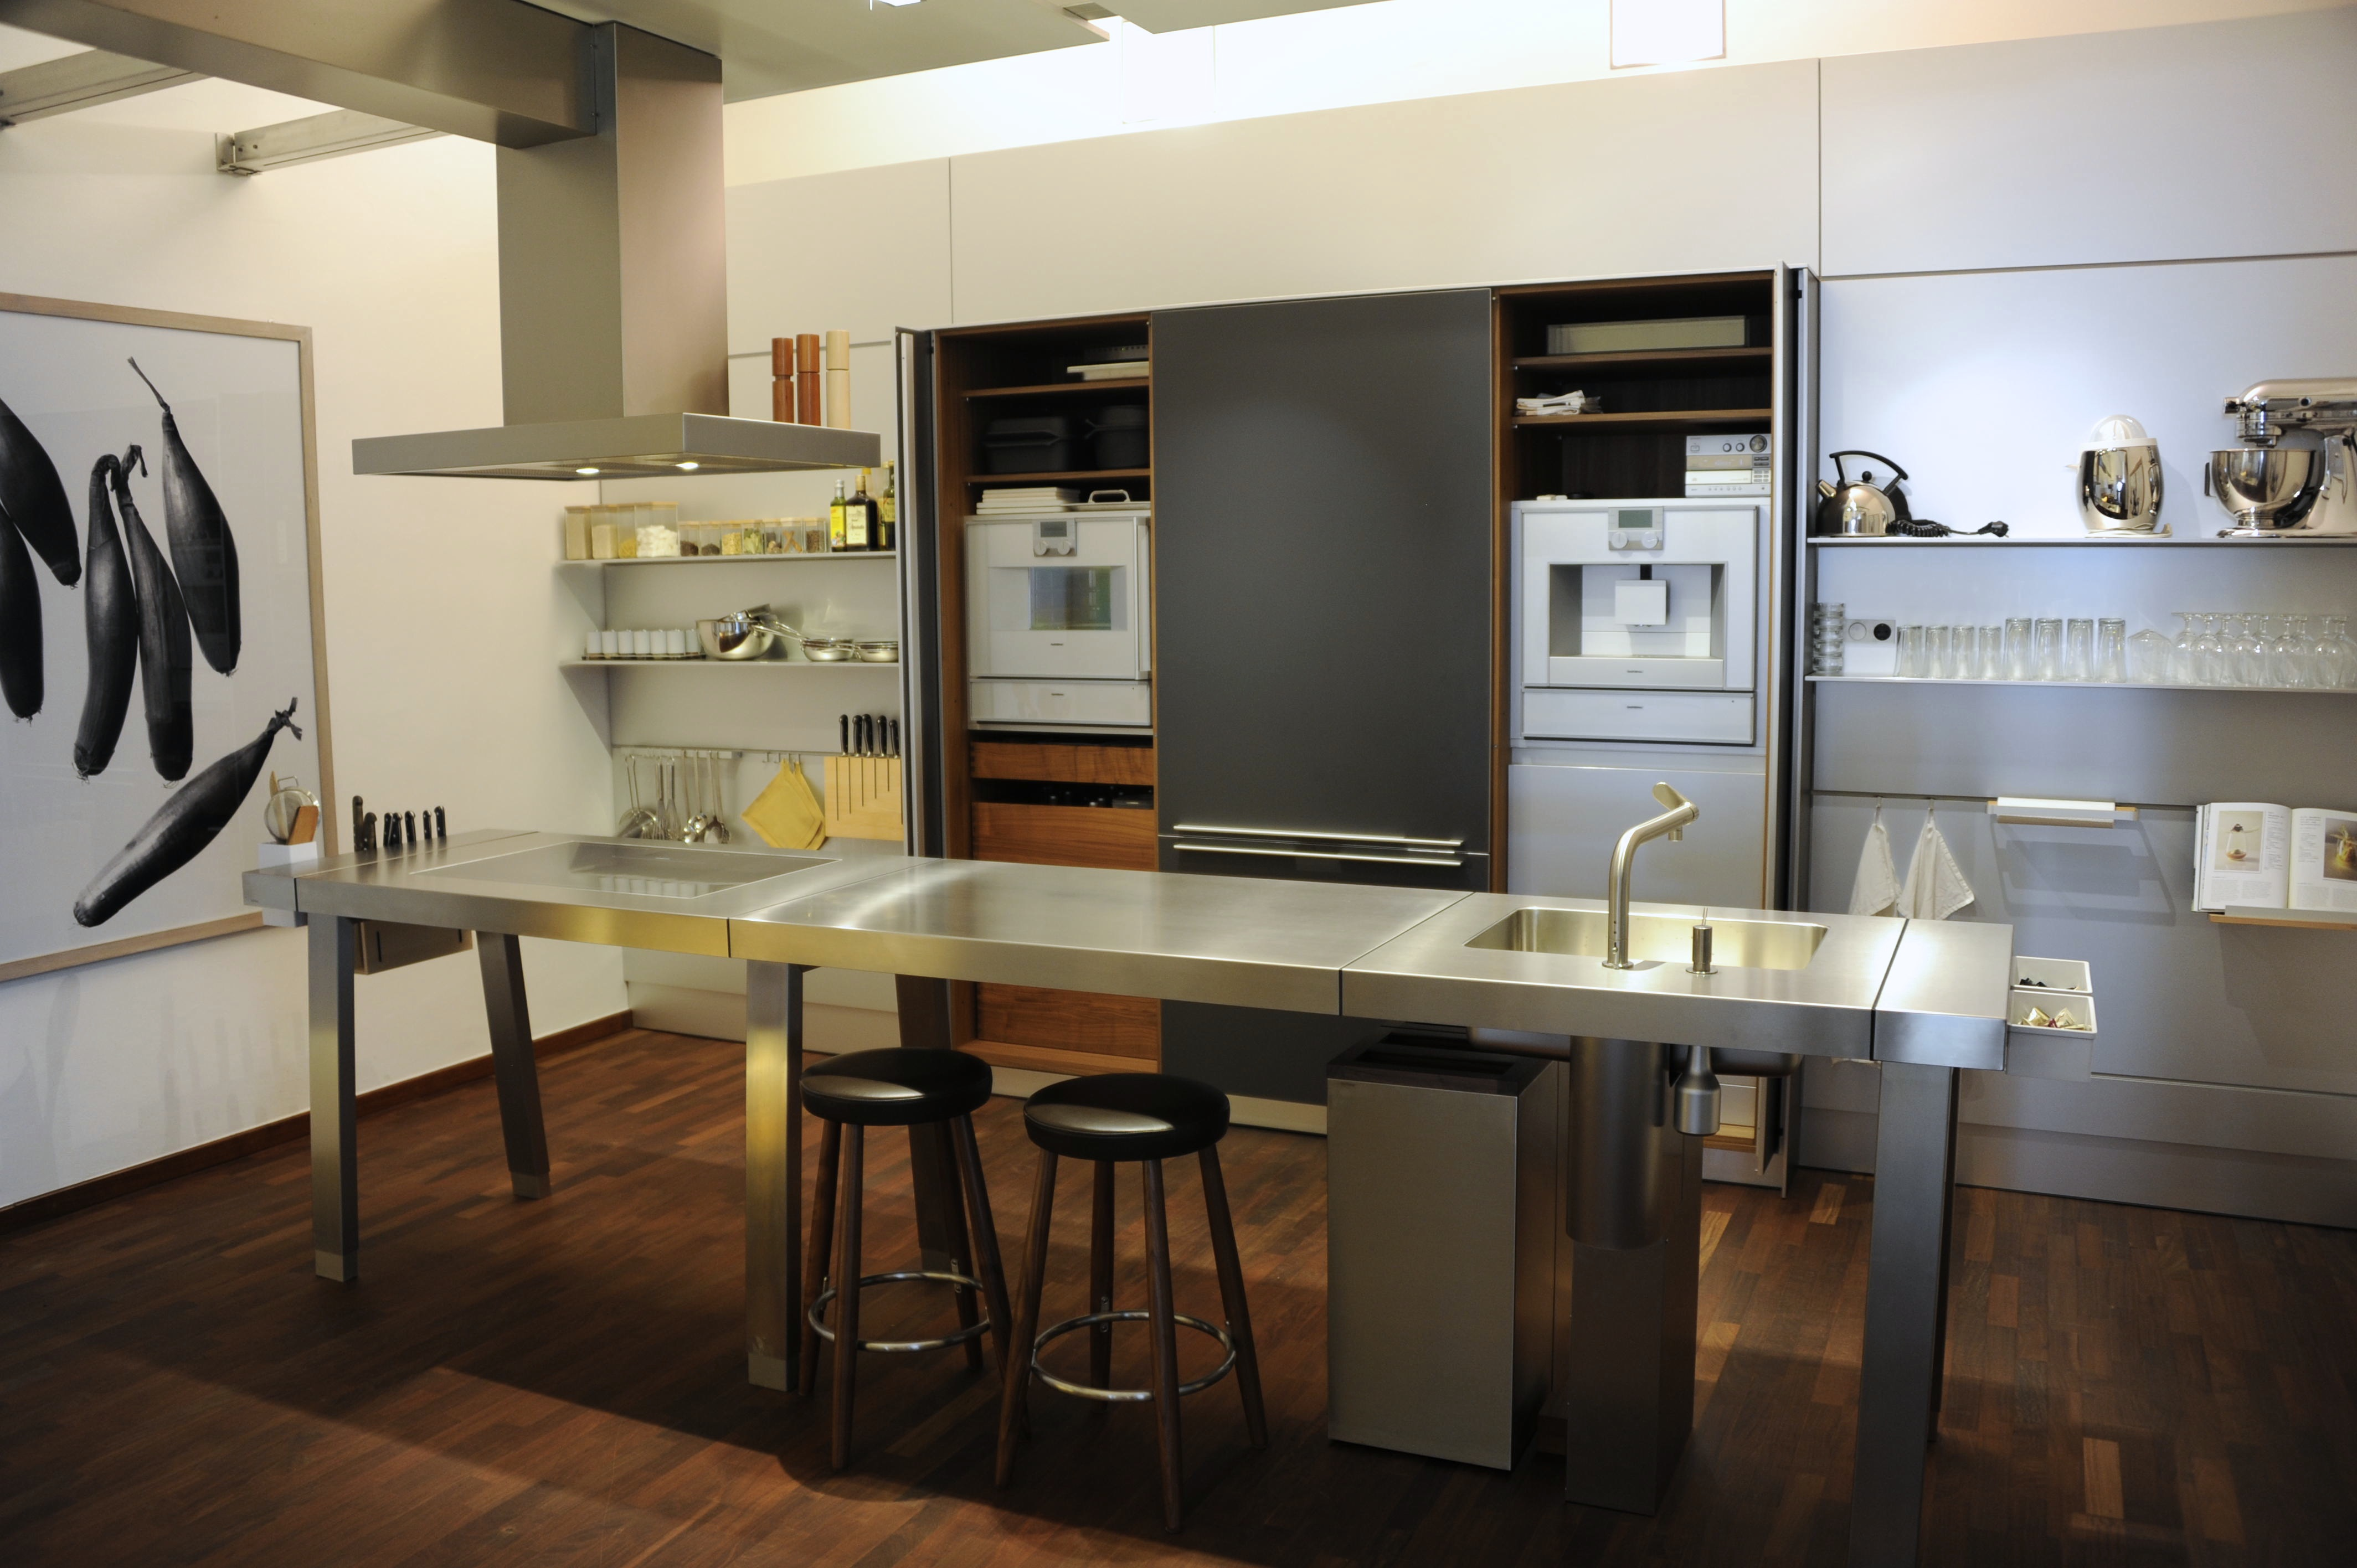 Modernist kitchen design showrooms jet city gastrophysics for Kitchen set up for restaurant